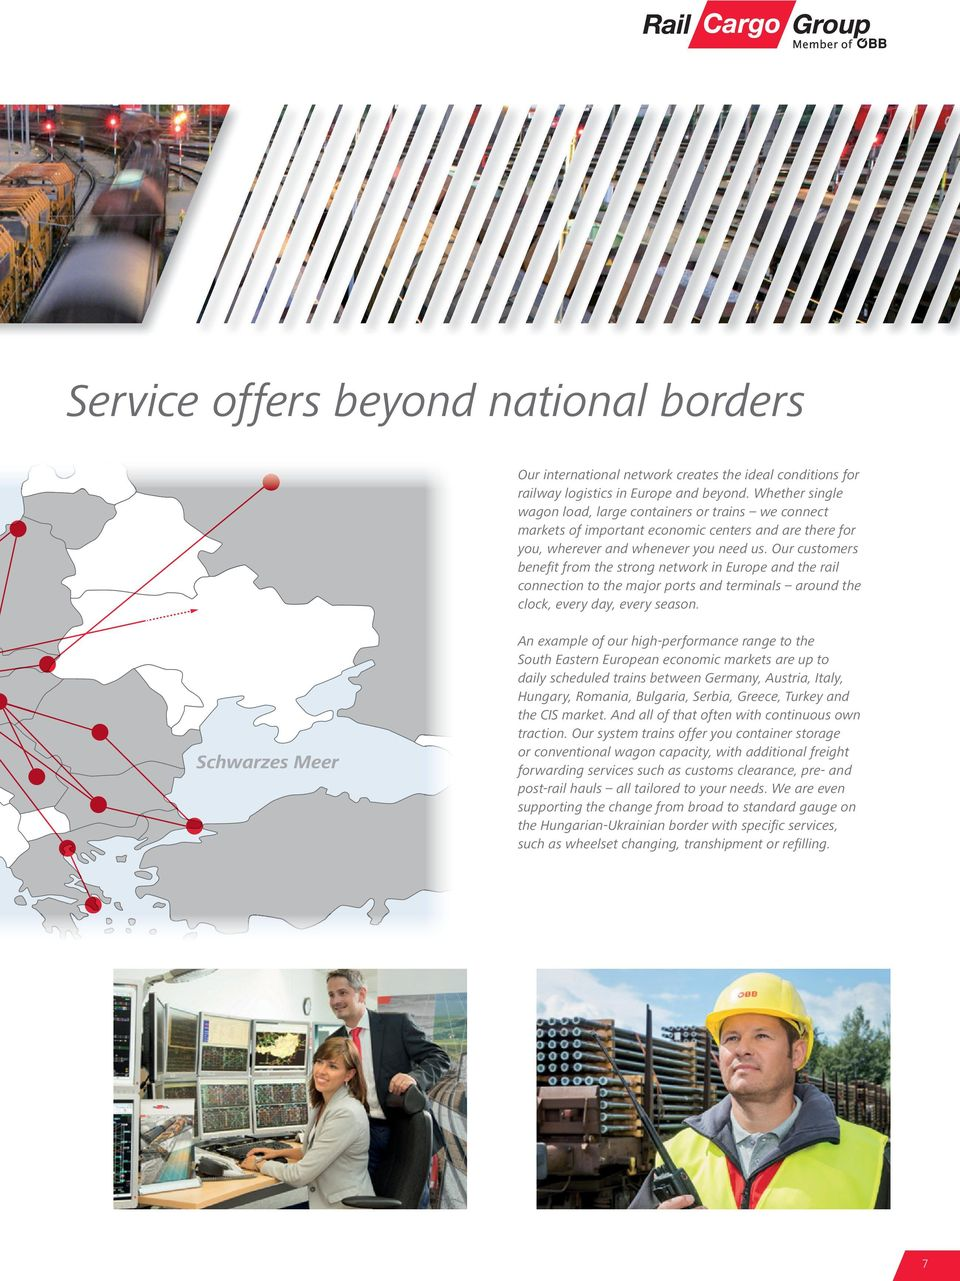 Our customers benefi t from the strong network in Europe and the rail connection to the major ports and terminals around the clock, every day, every season.